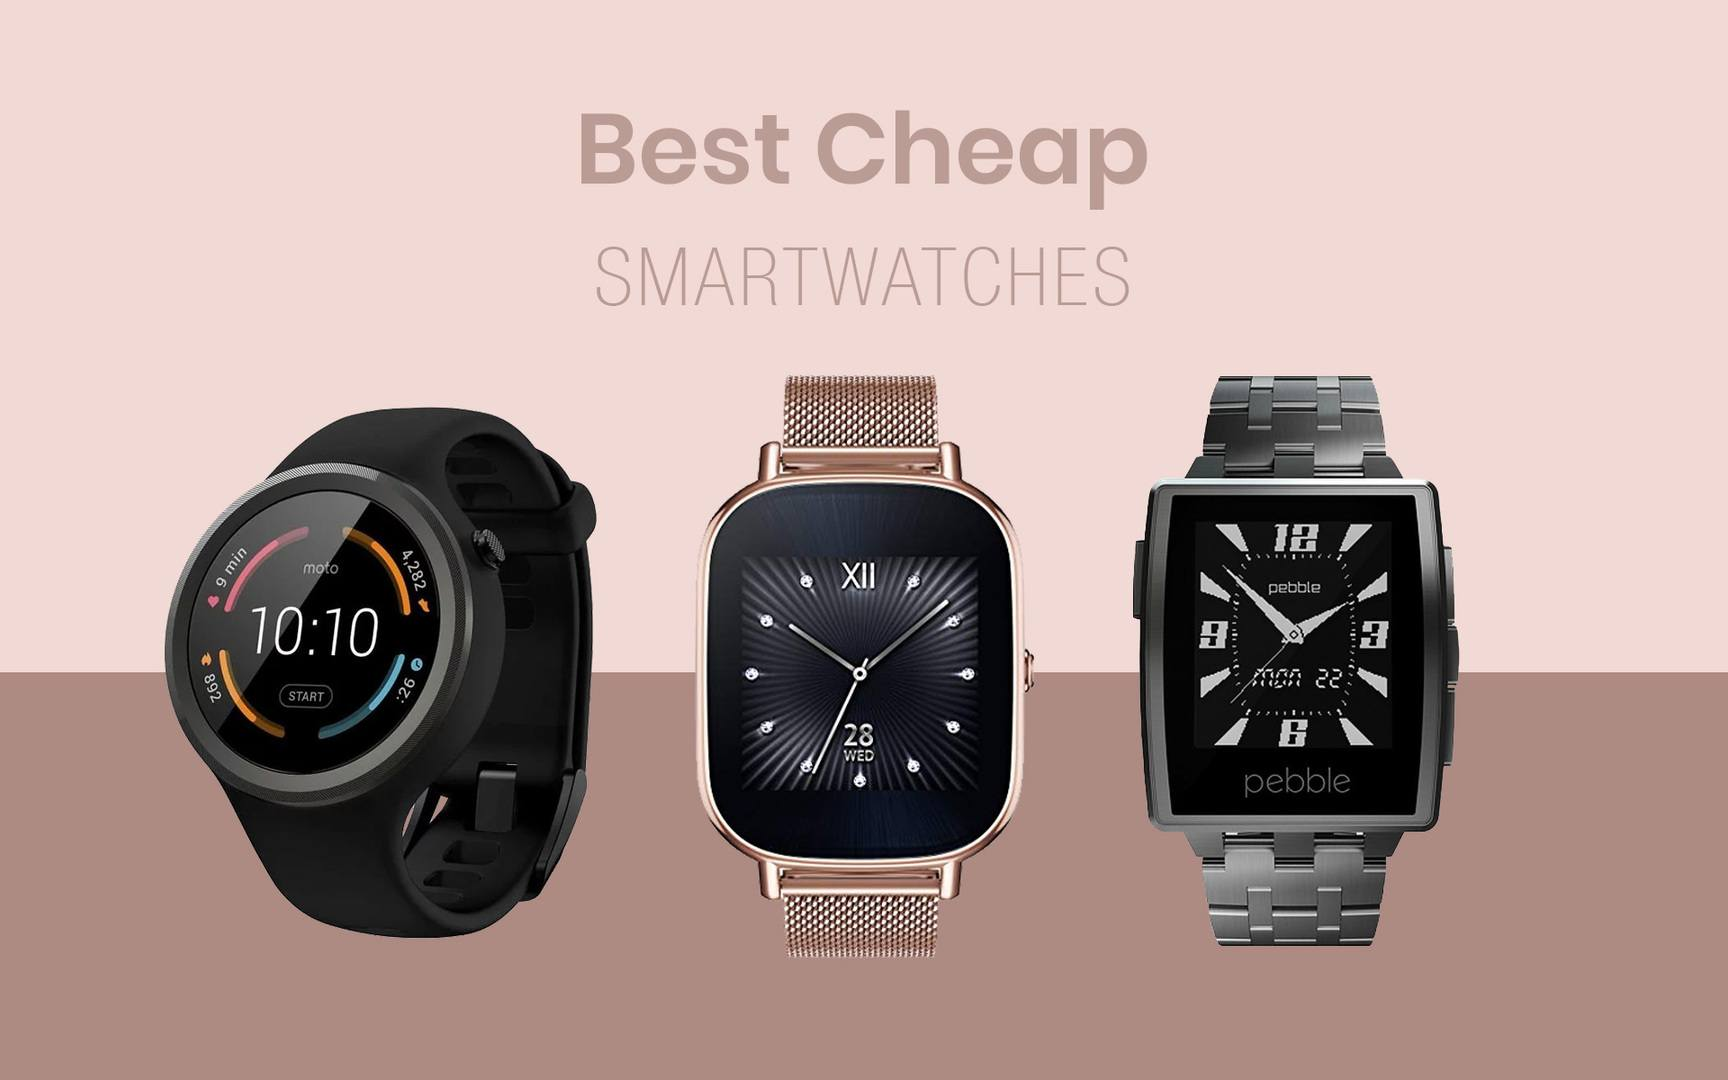 The Best Cheap Smartwatches